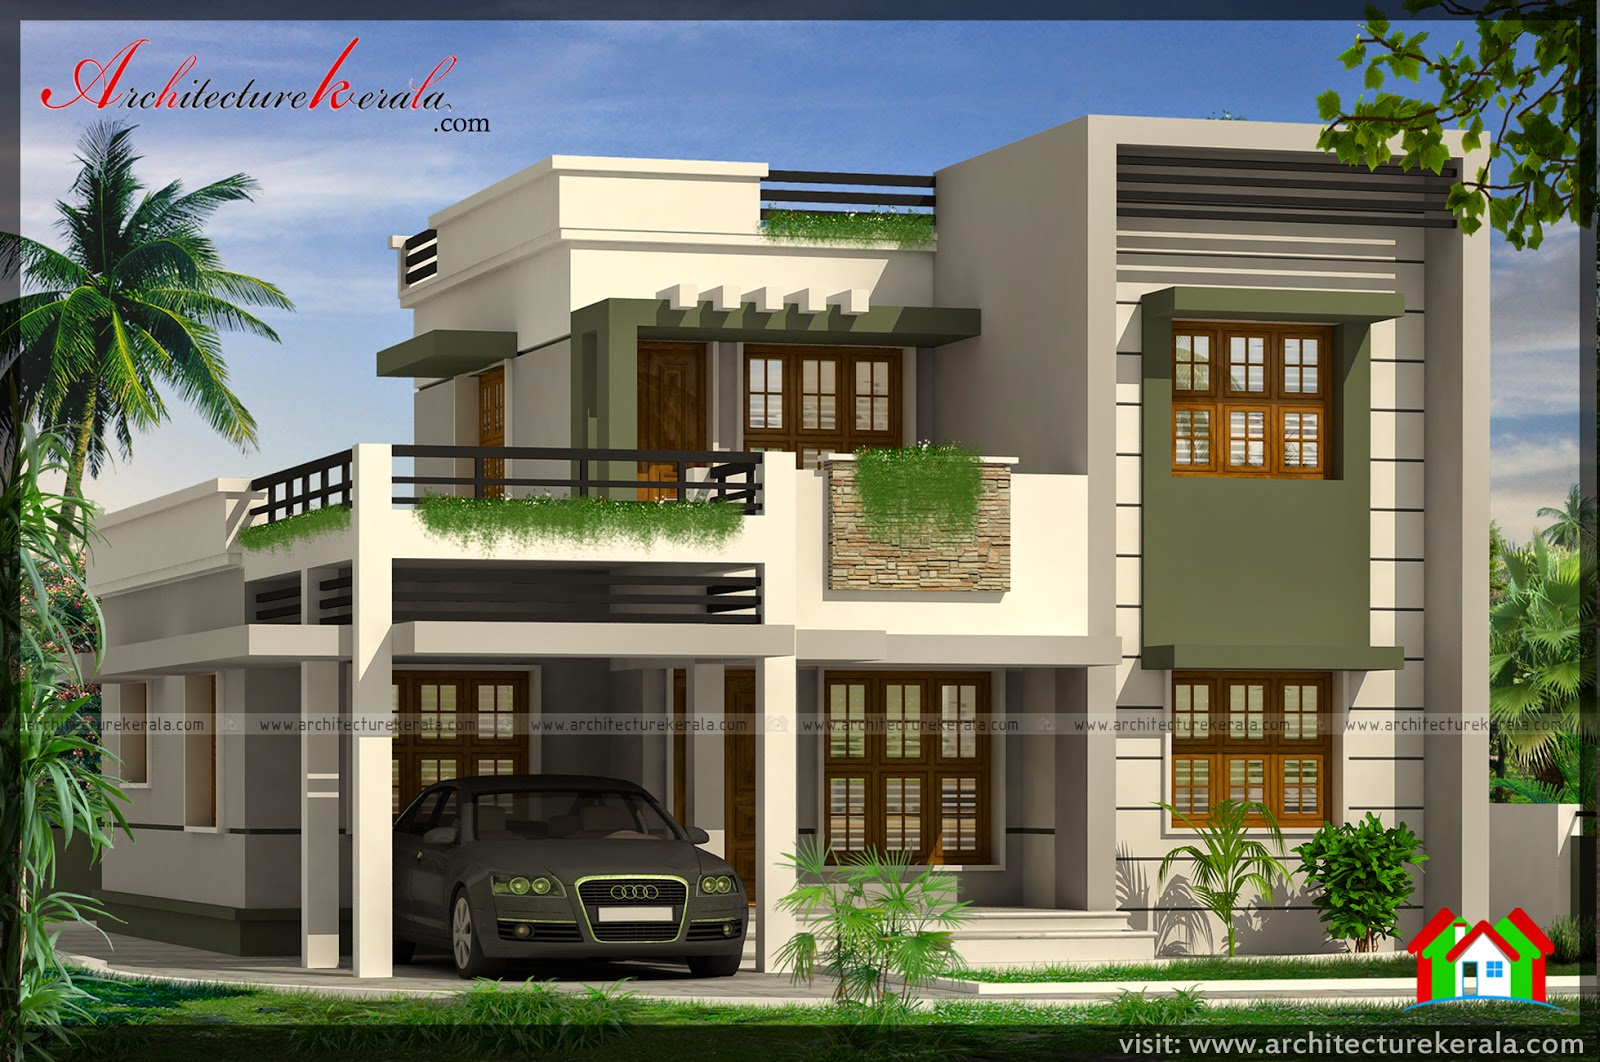 Below 2000 square feet house plan and elevation architecture kerala - Home design pic ...